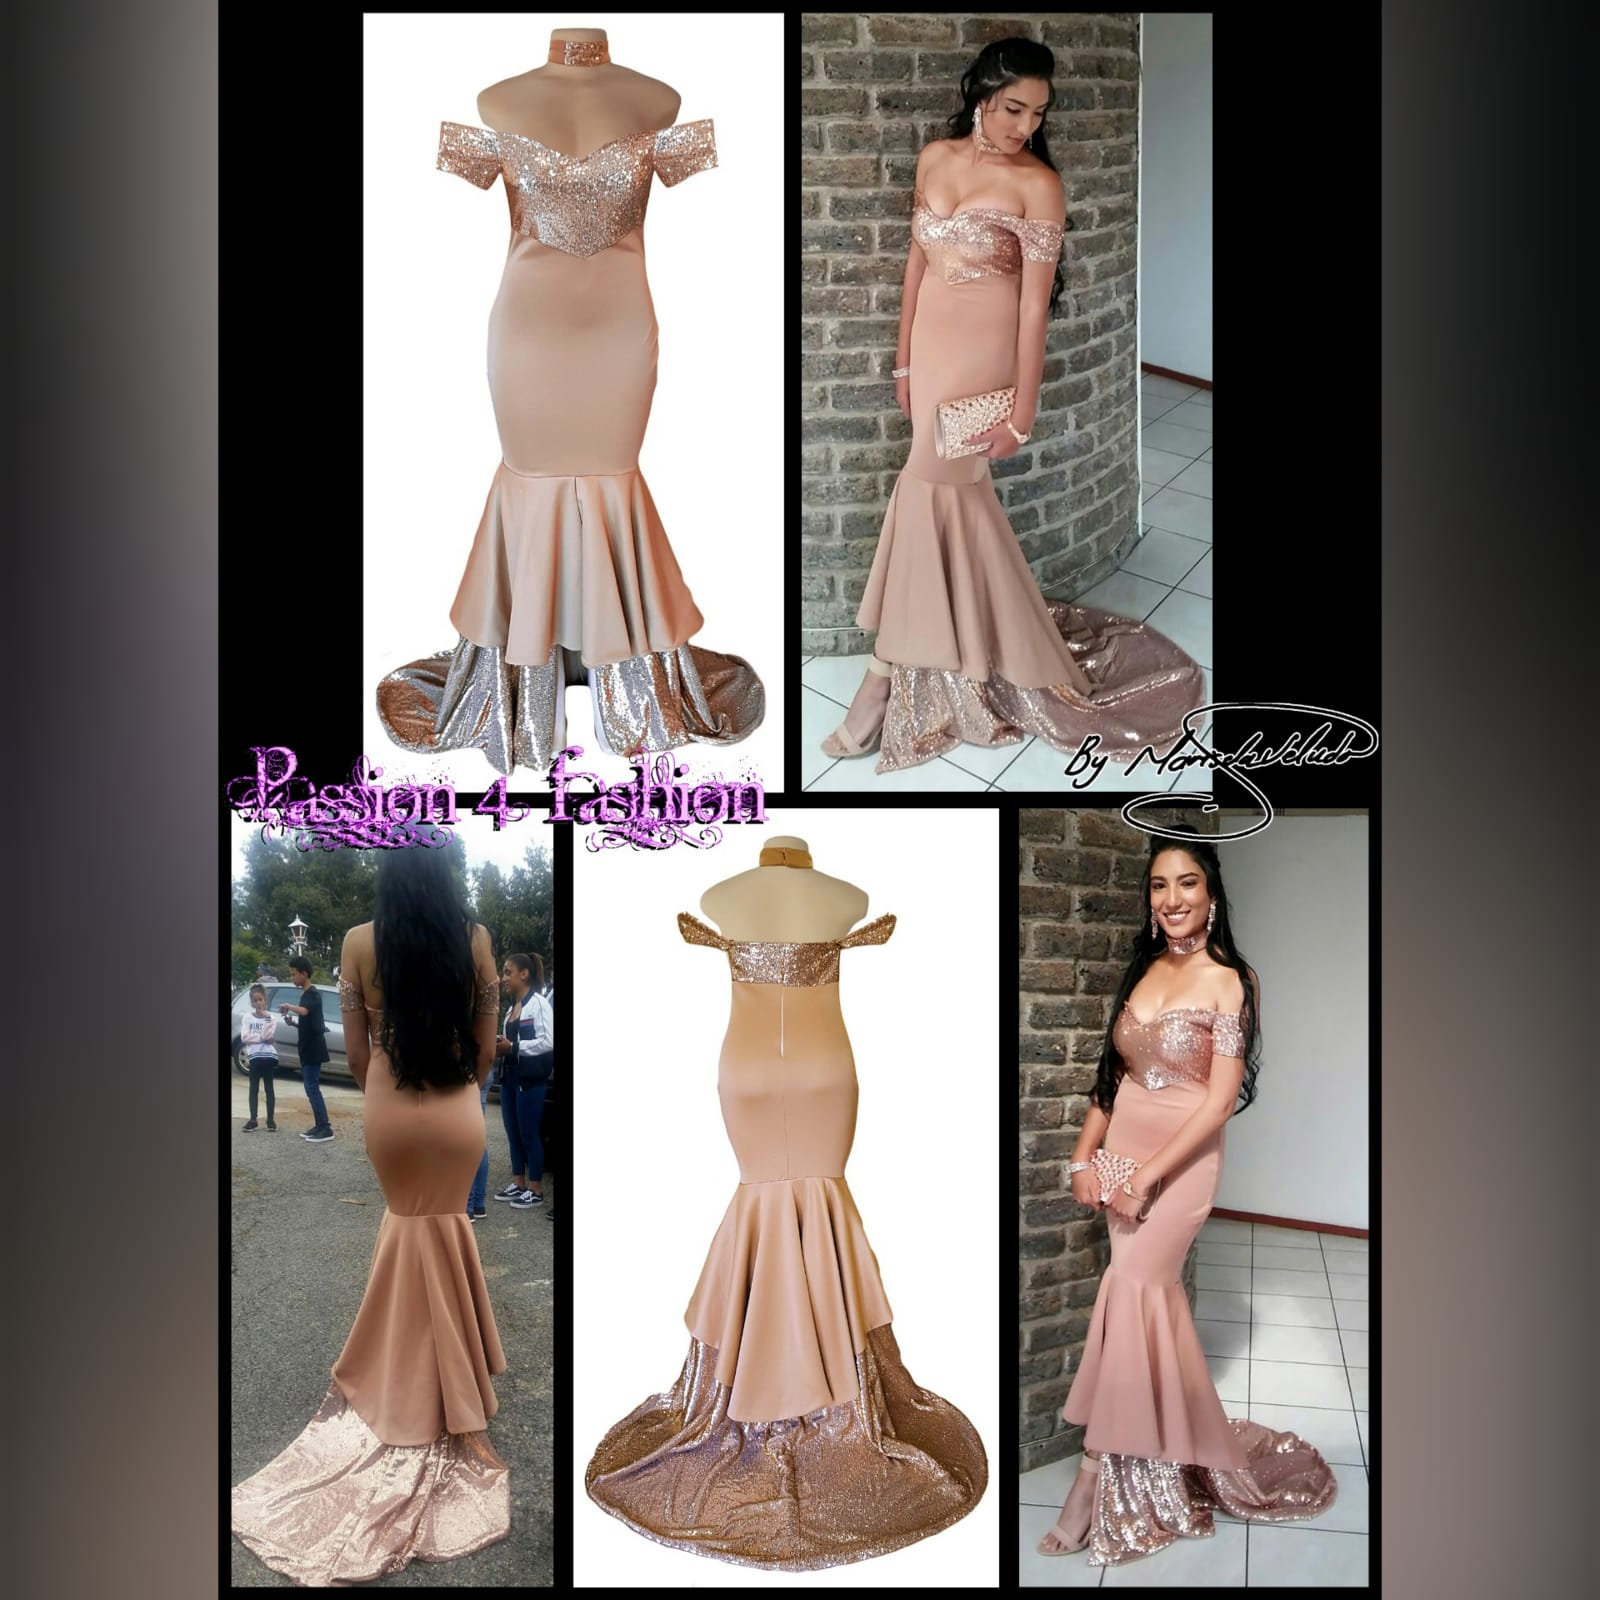 Rose gold 2 tone mermaid prom dress 2 rose gold 2 tone mermaid prom dress, off-shoulder dress with a sweetheart neckline and off-shoulder short sleeves. Double layer from knee down, with sequins, creating a train with a slit int the front middle. Comes with a matching choker.